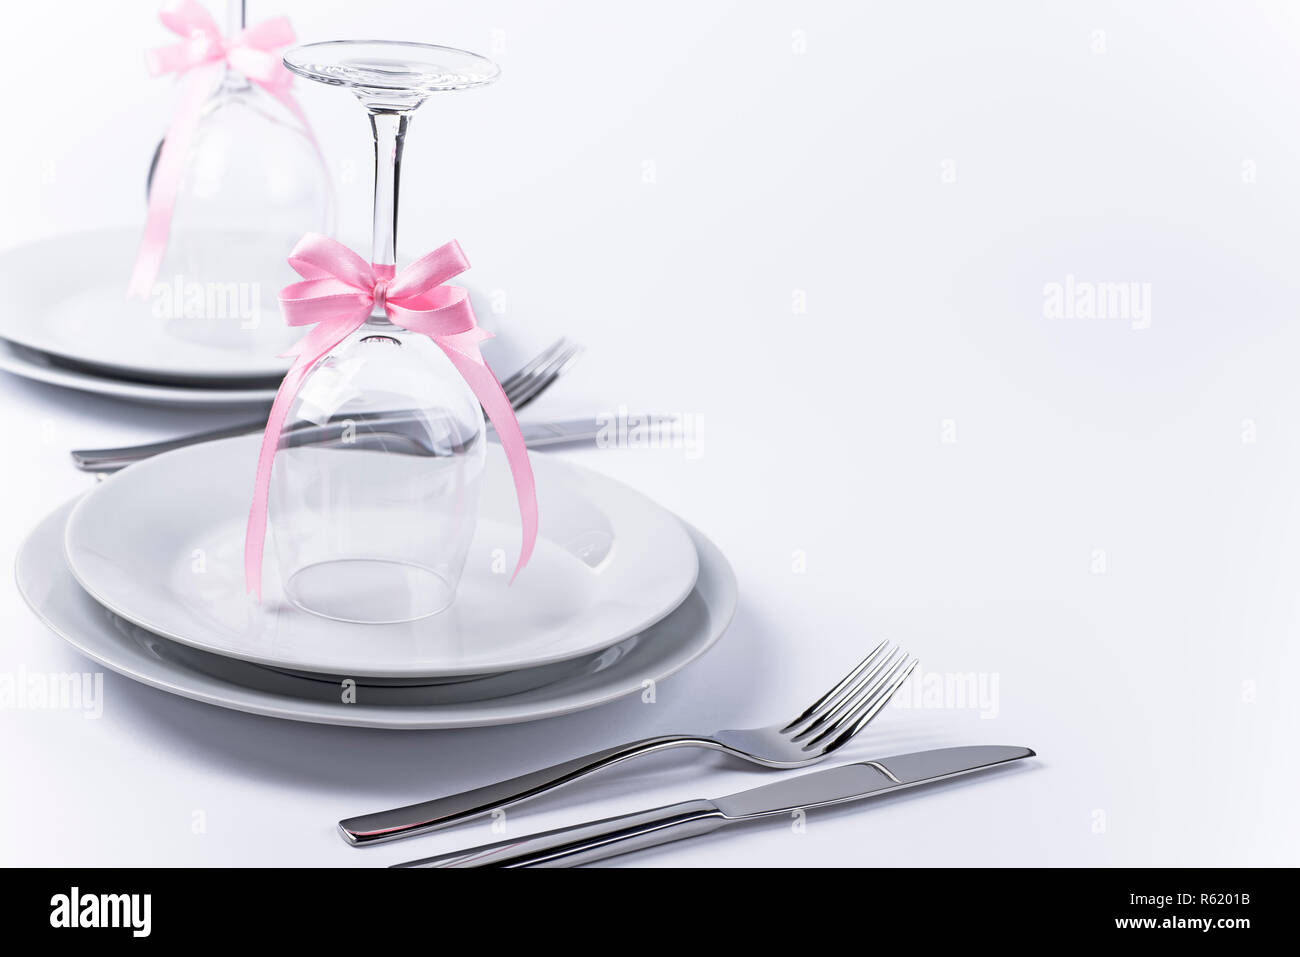 Wine Glasses Turned Upside Down With Pink Decoration As Background